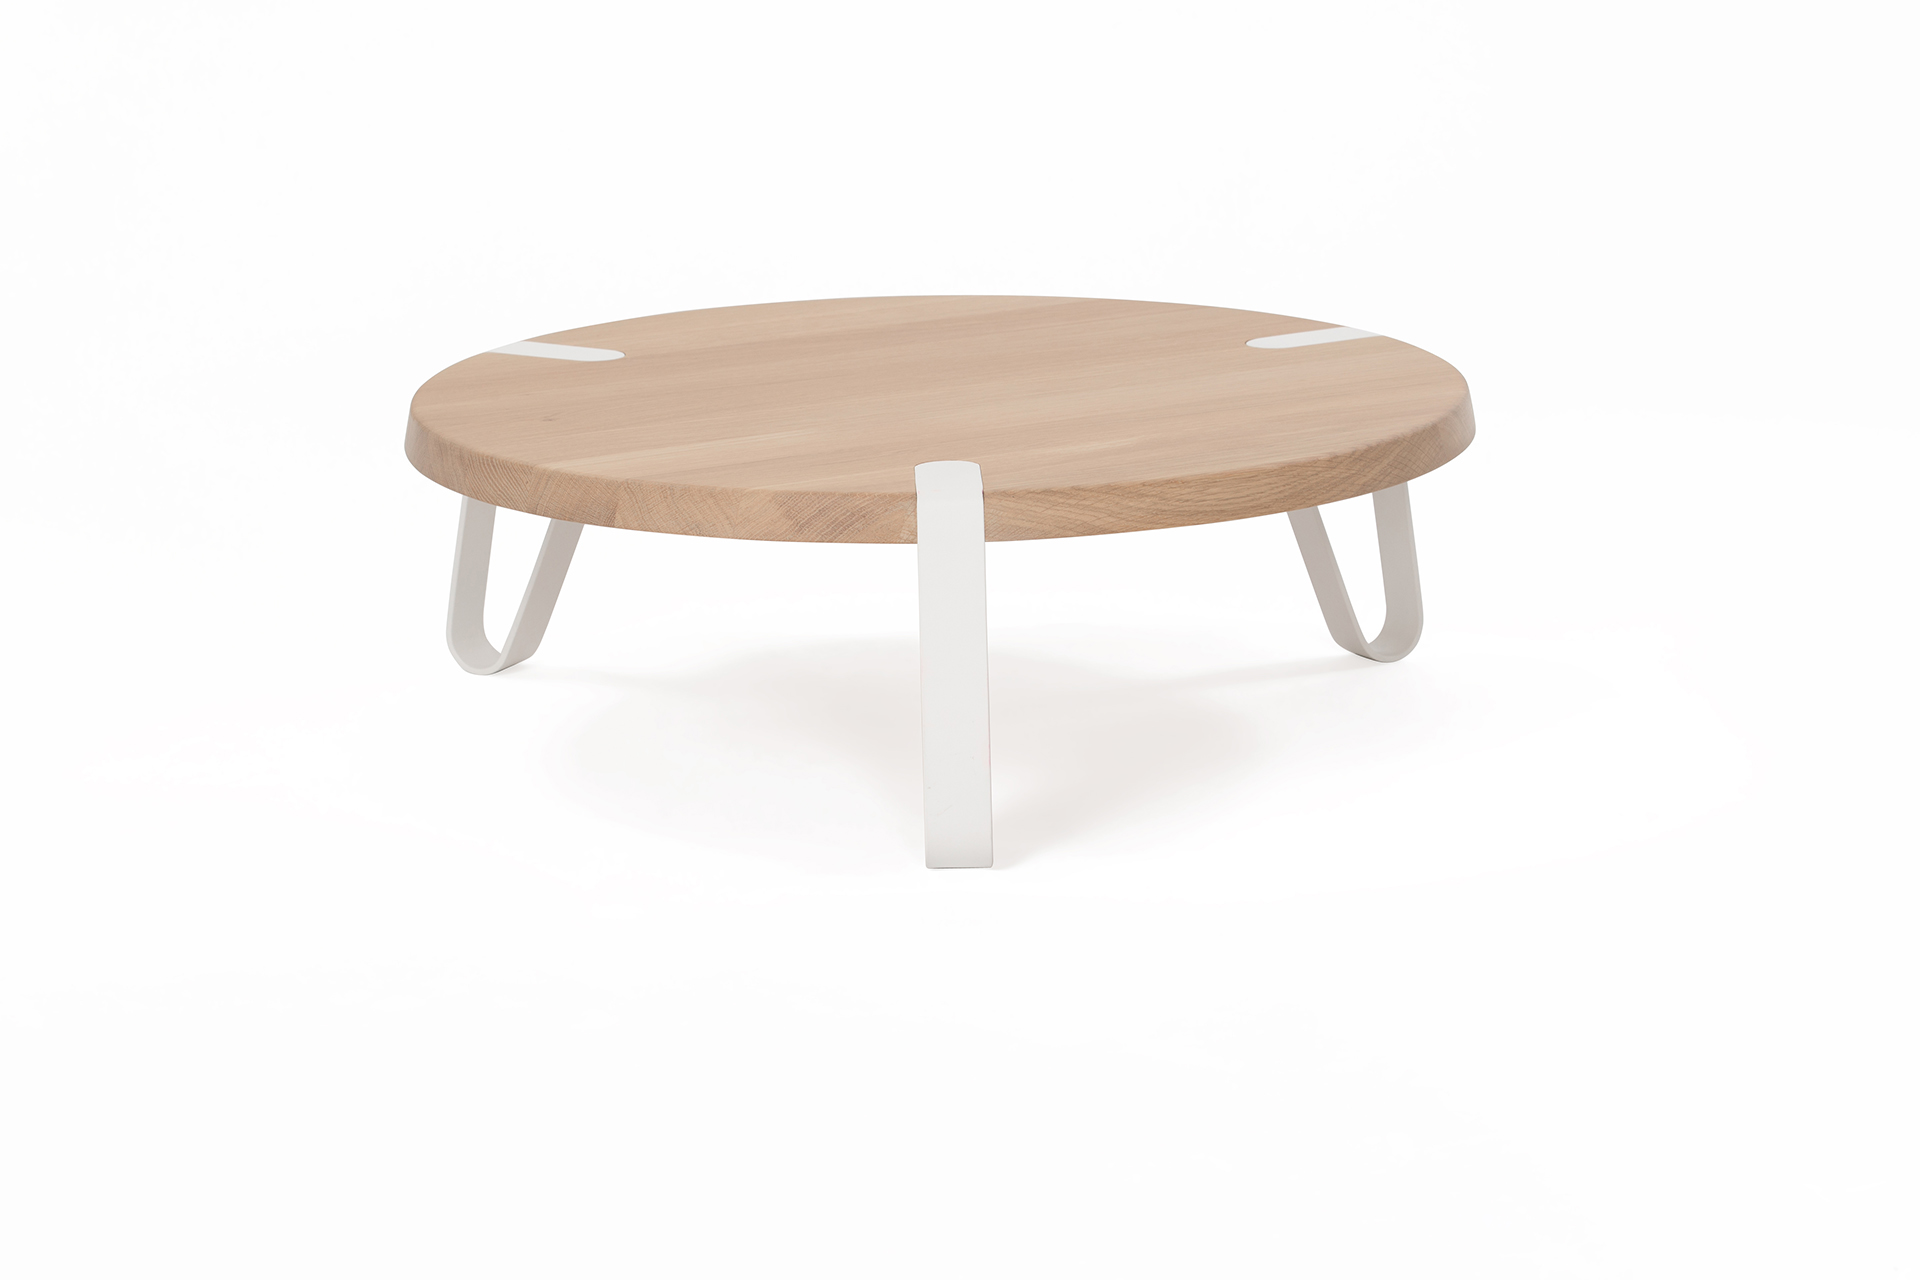 Salontafel Wit Hout Rond.Level Rond Design Salontafel L Erik Remmers L Odesi Your Dutch Design